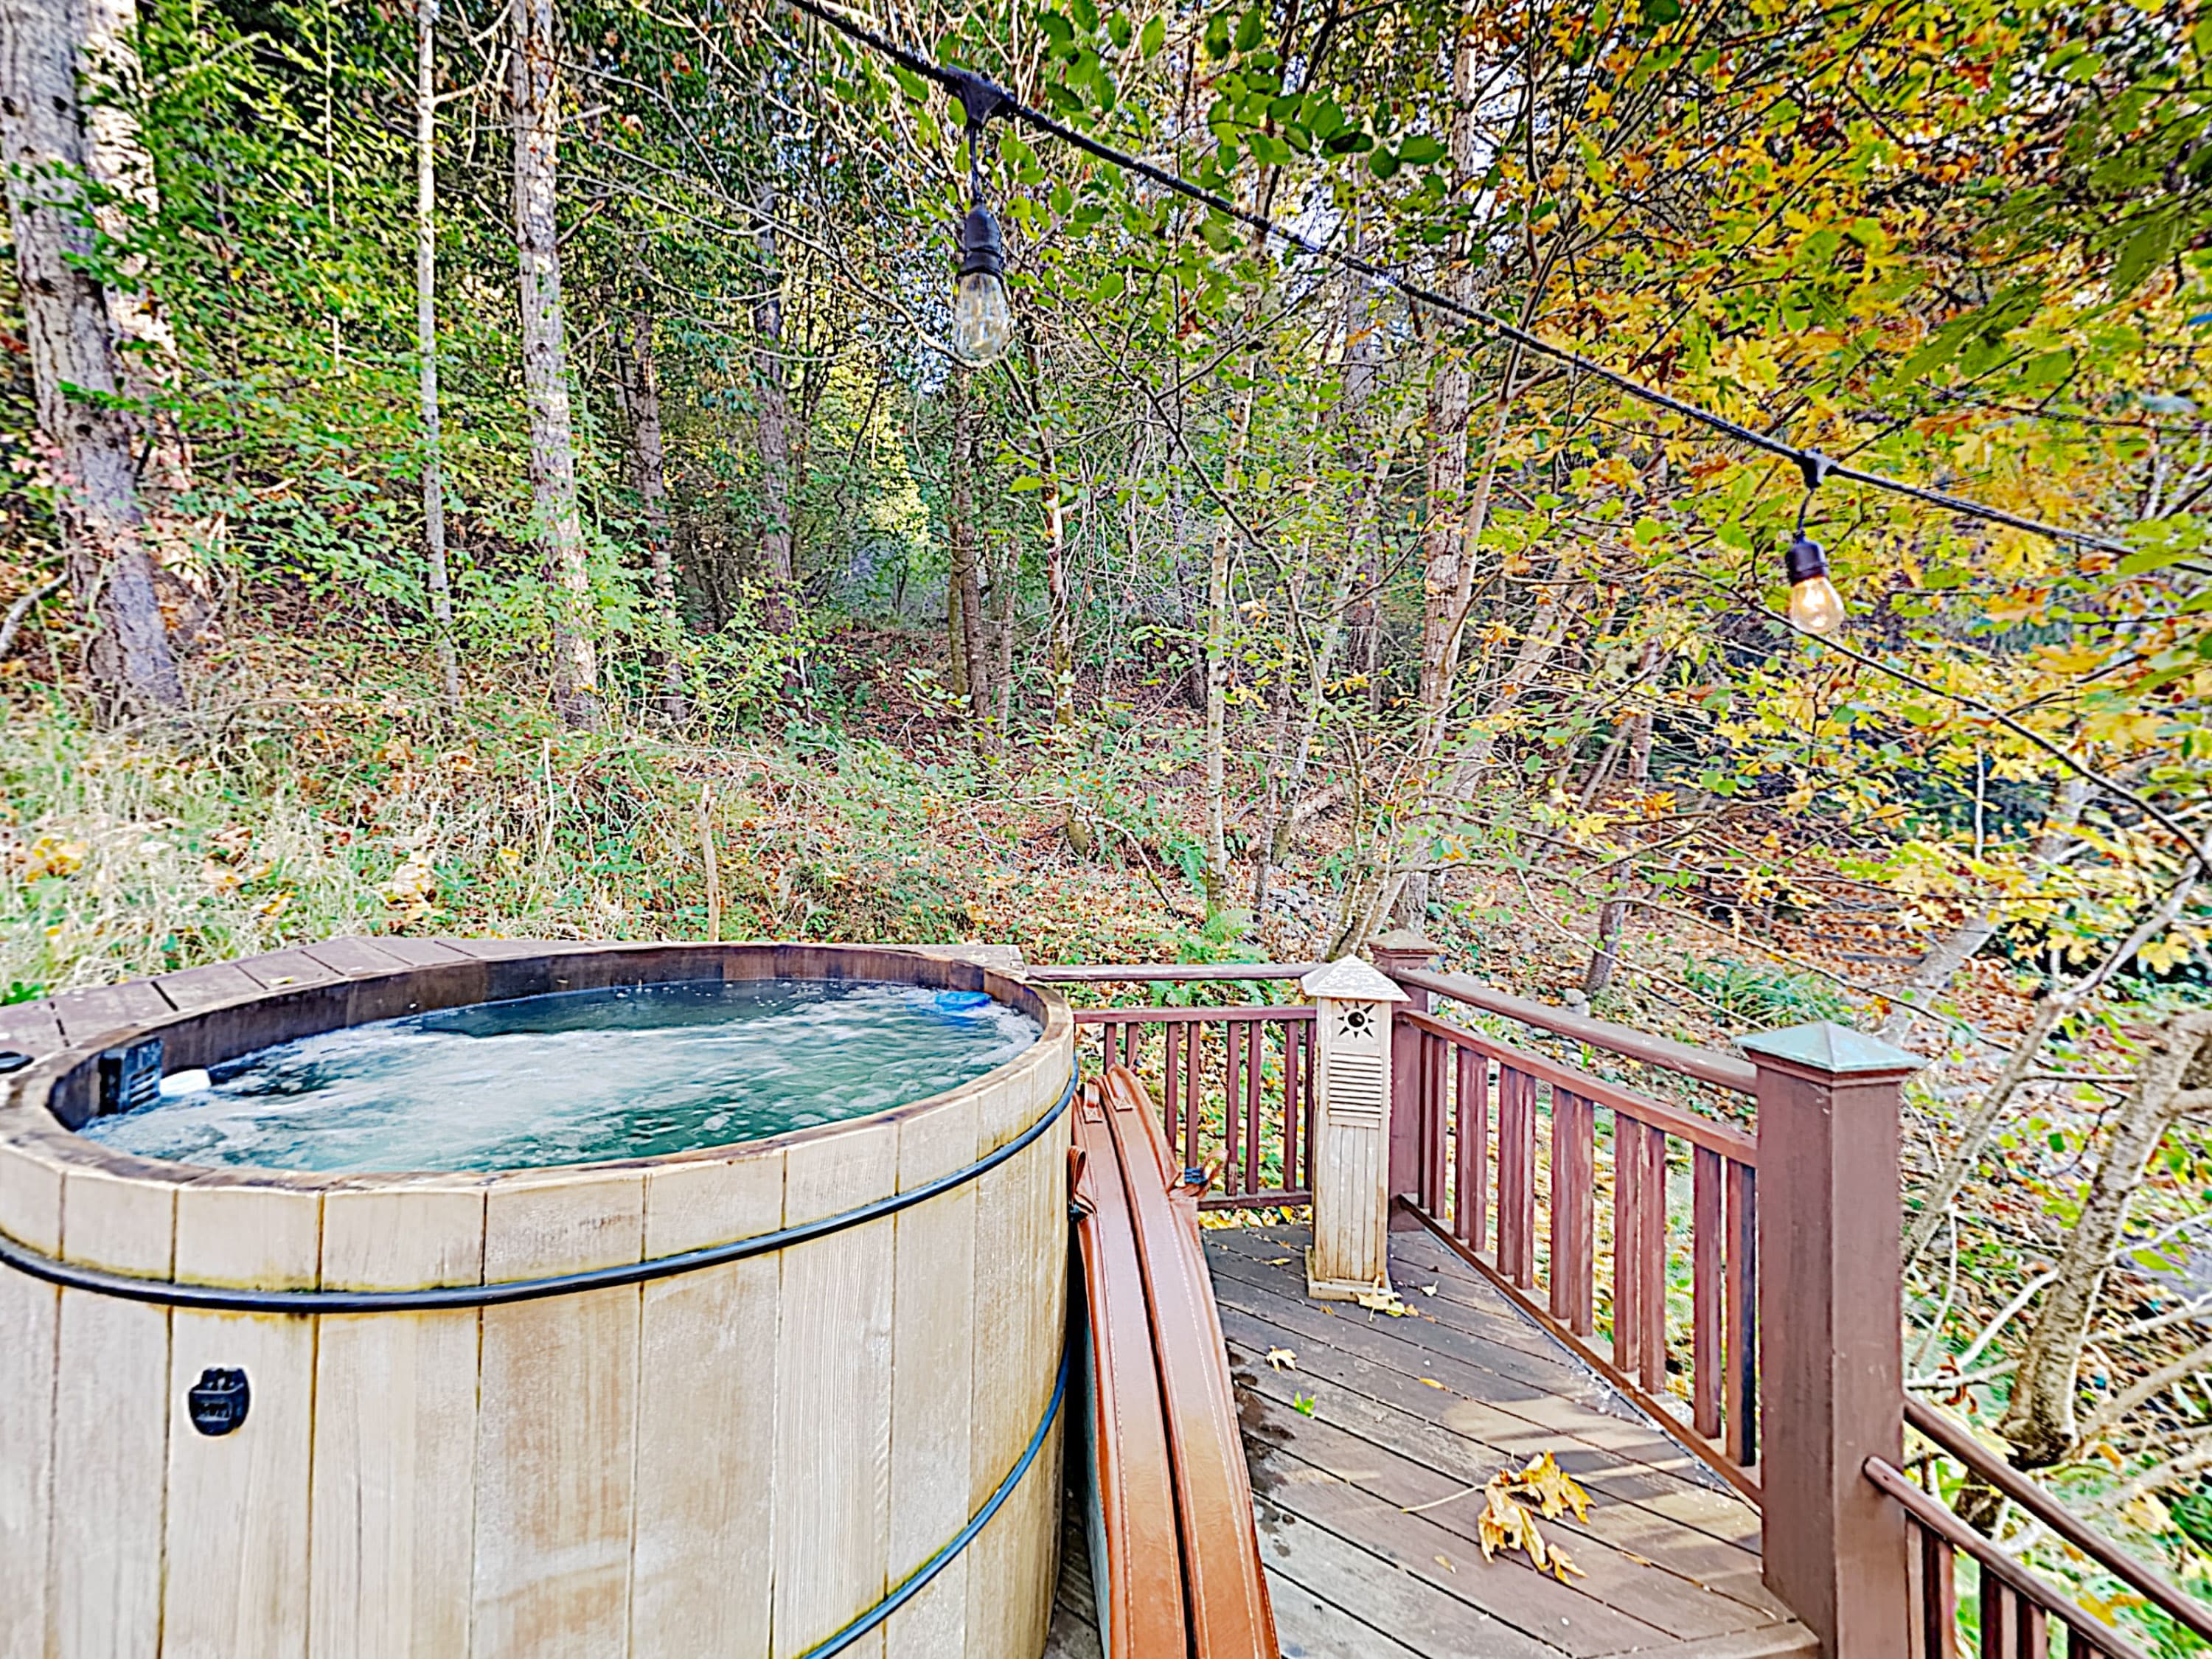 Warm up while taking in the scenic setting in the hot tub.